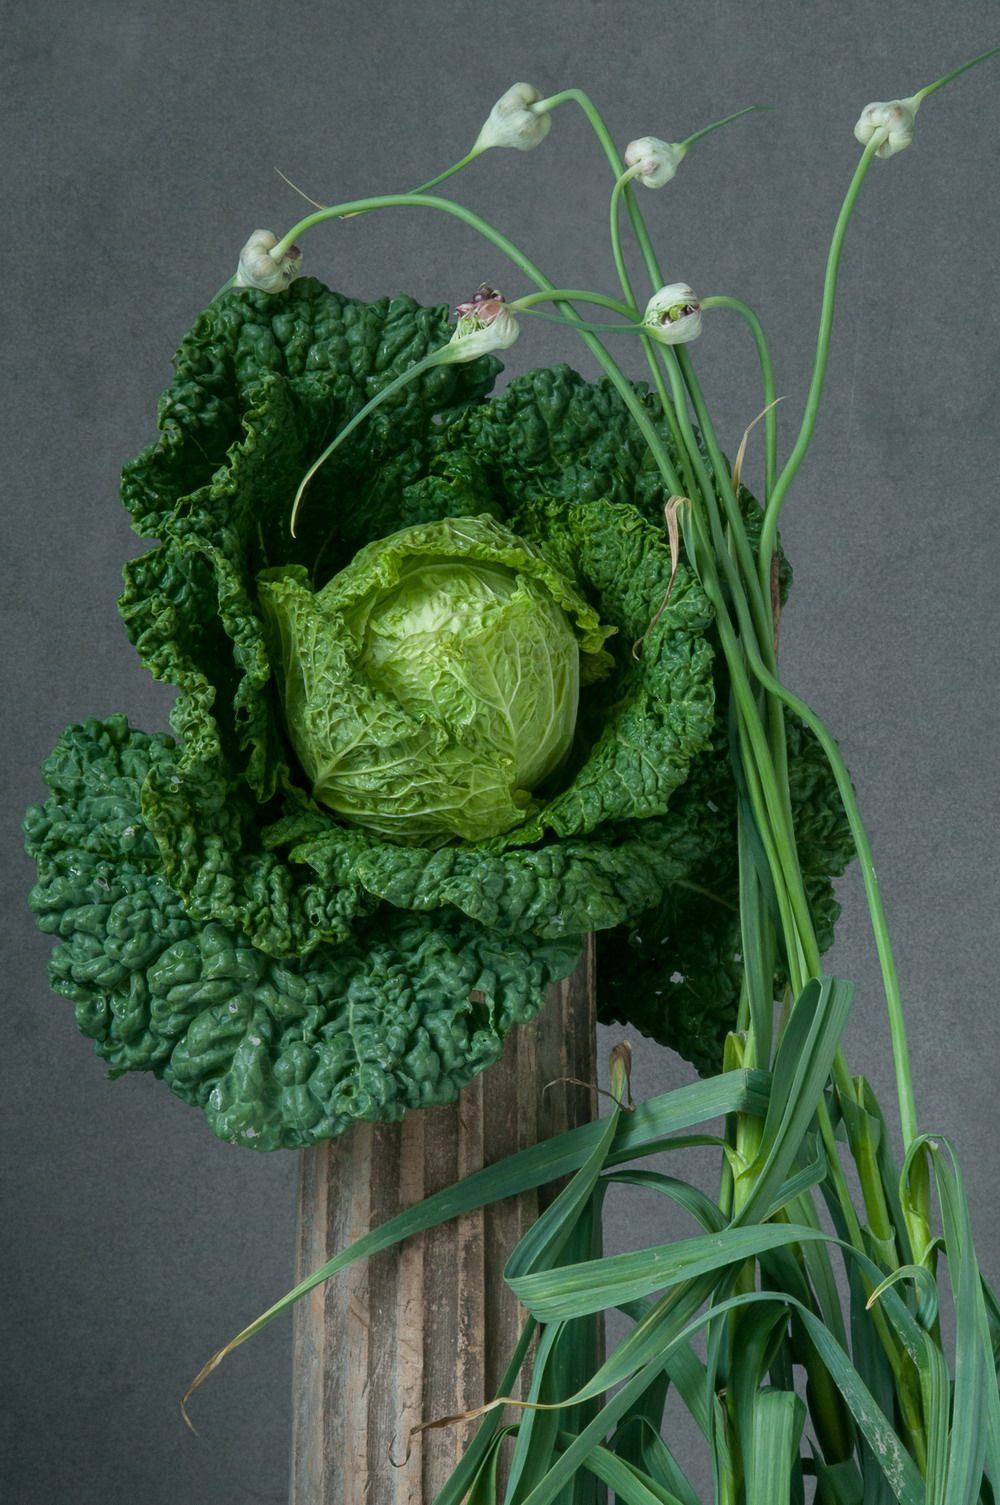 Savoy Cabbage & Garlic, from her Pedestal series by Lynn Karlin ©. All rights reserved